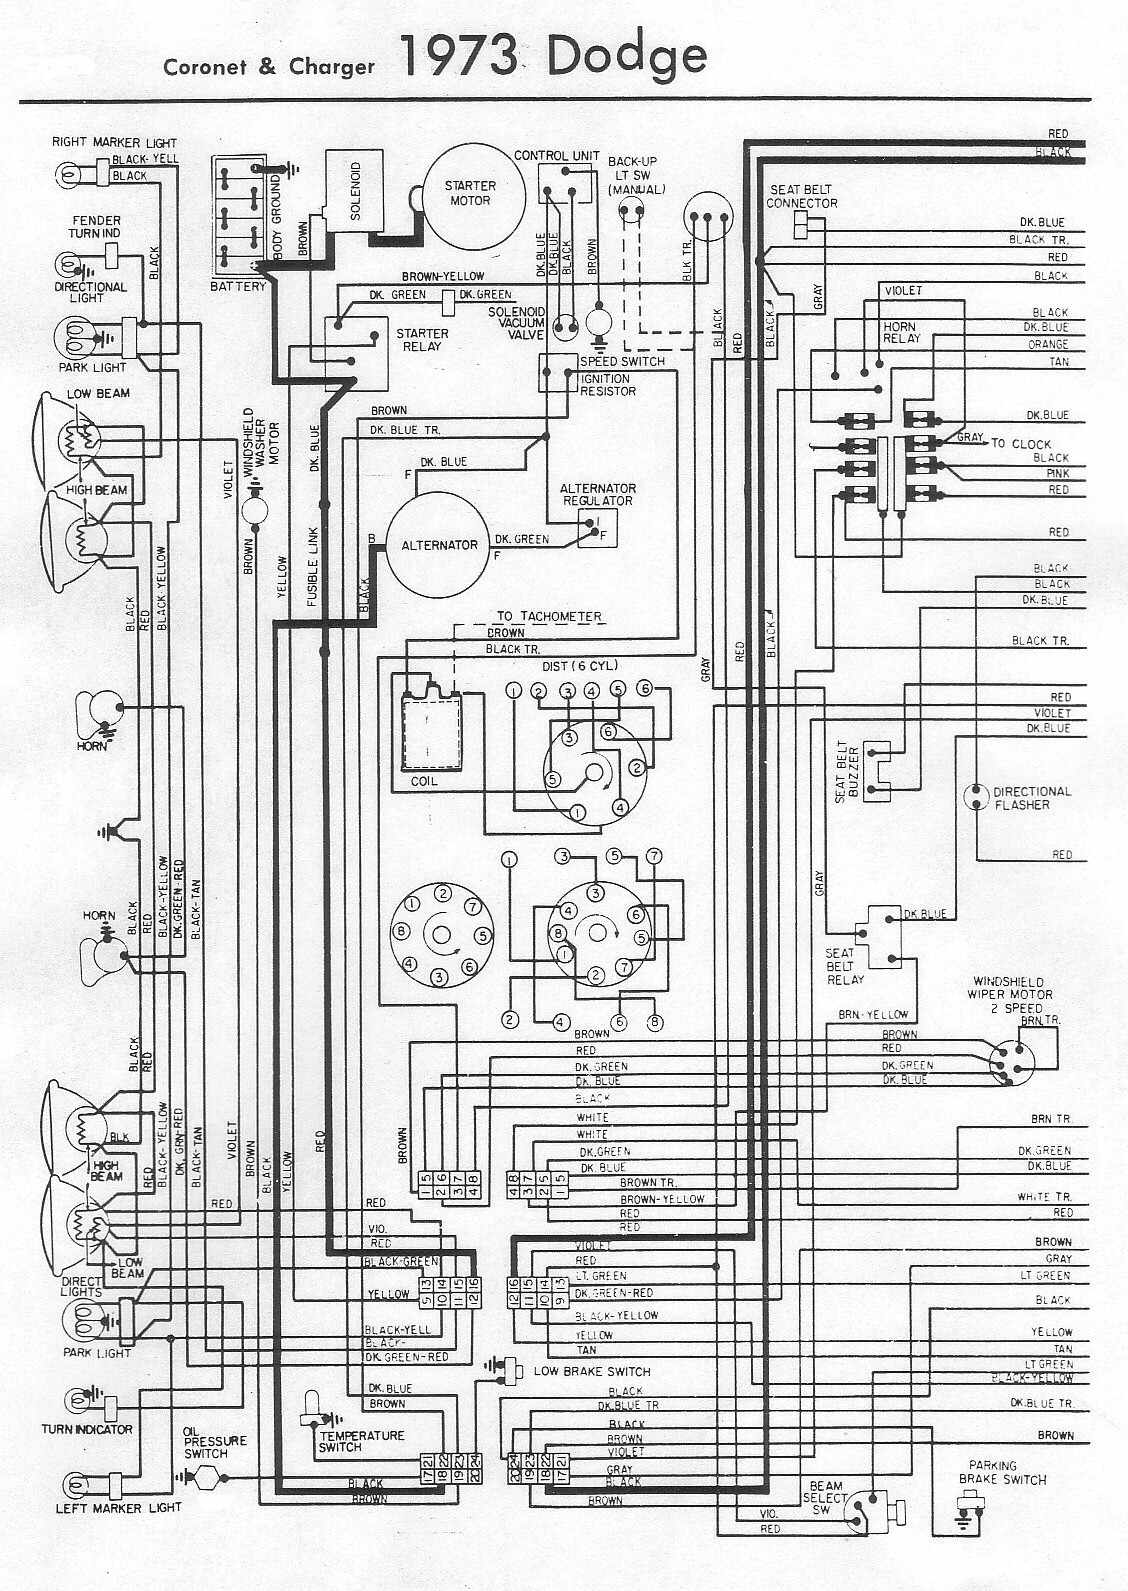 1978 Dodge Motorhome Wiring Schematic Diagrams Fleetwood Battery Diagram Also Worksheet For 1973 Charger Alternator 45 Discovery